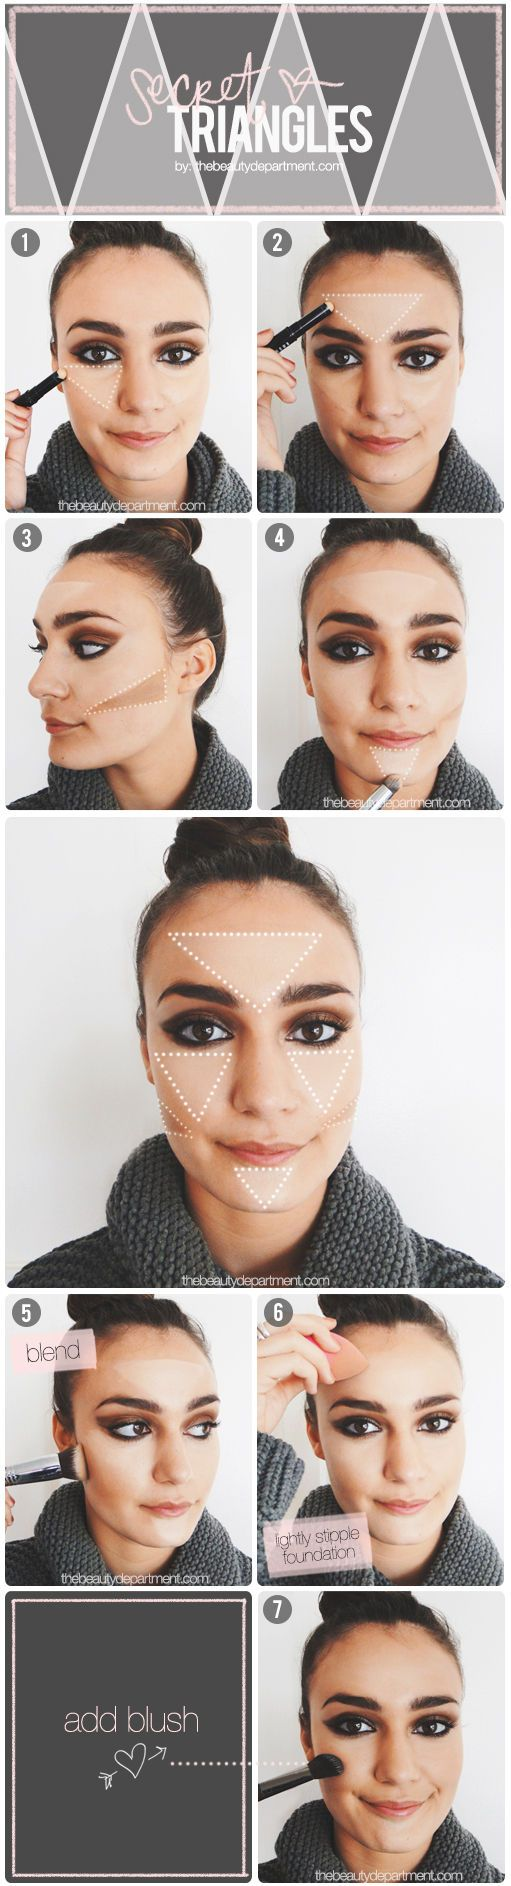 25+ best ideas about Tutorial contouring on Pinterest | Eyeliner ...